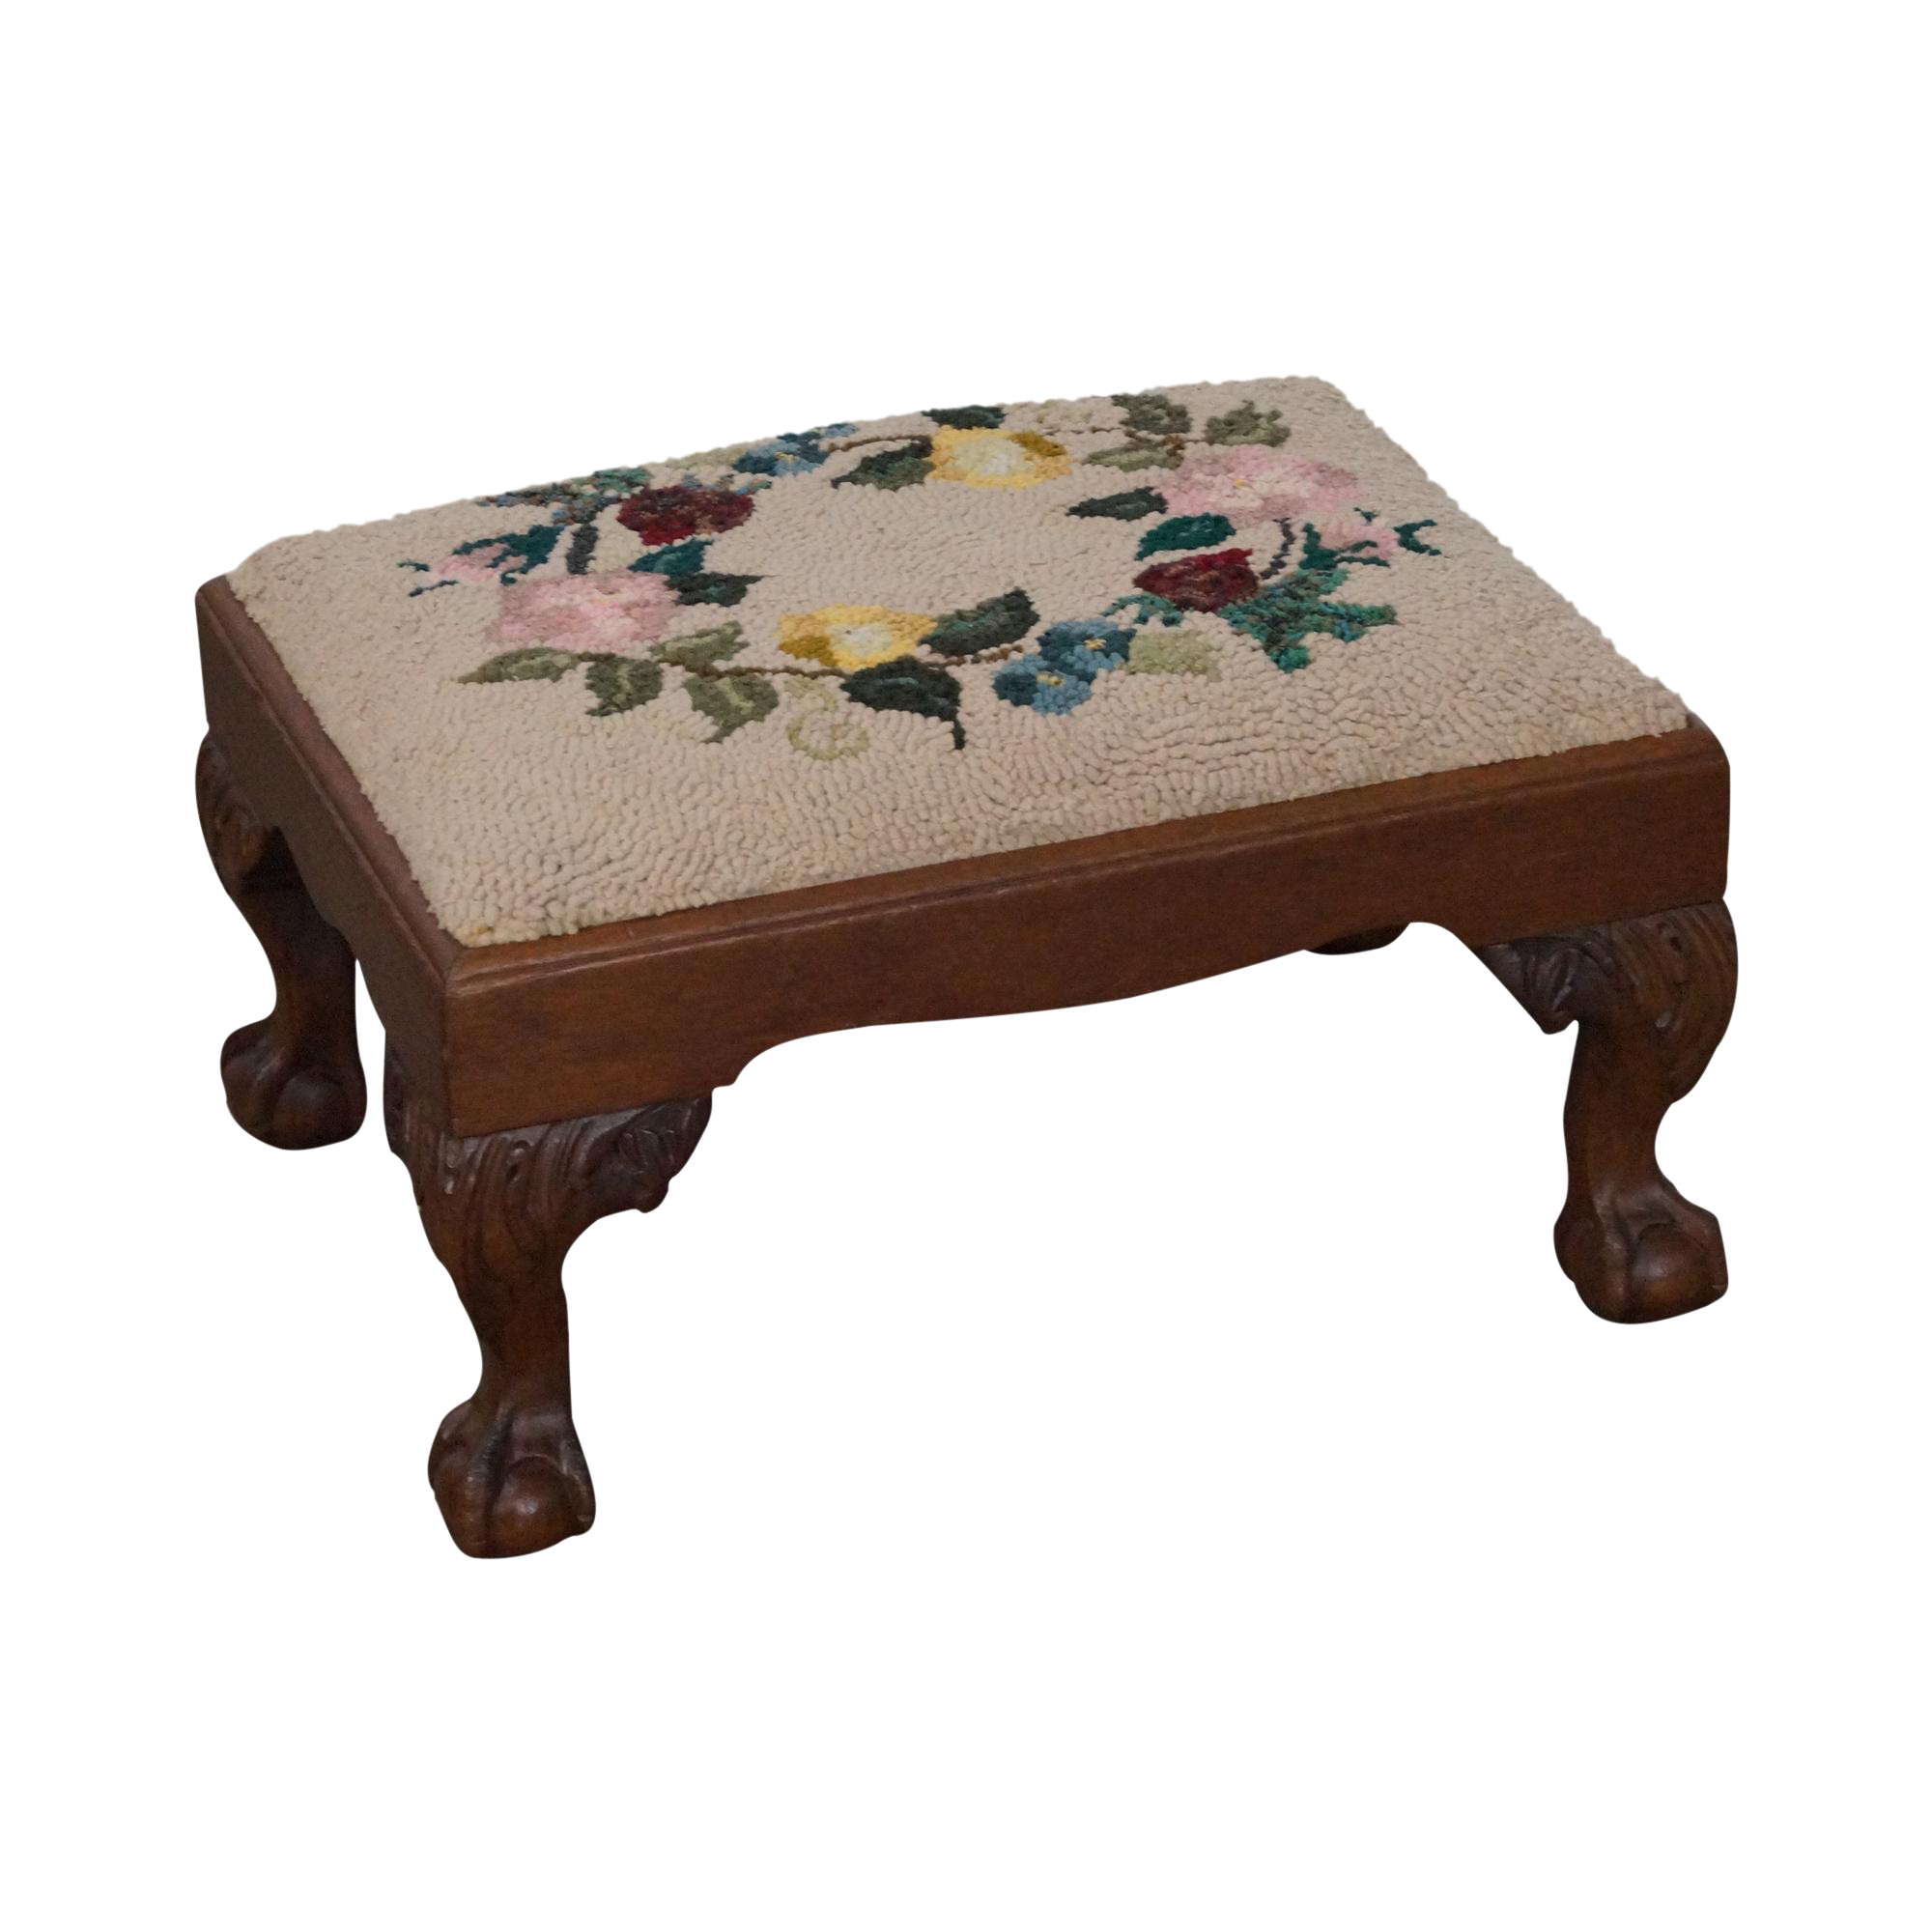 Attractive Antique Chippendale Style Mahogany Ball U0026 Claw Foot Needlepoint Footstool    Image 1 Of 10 Ideas